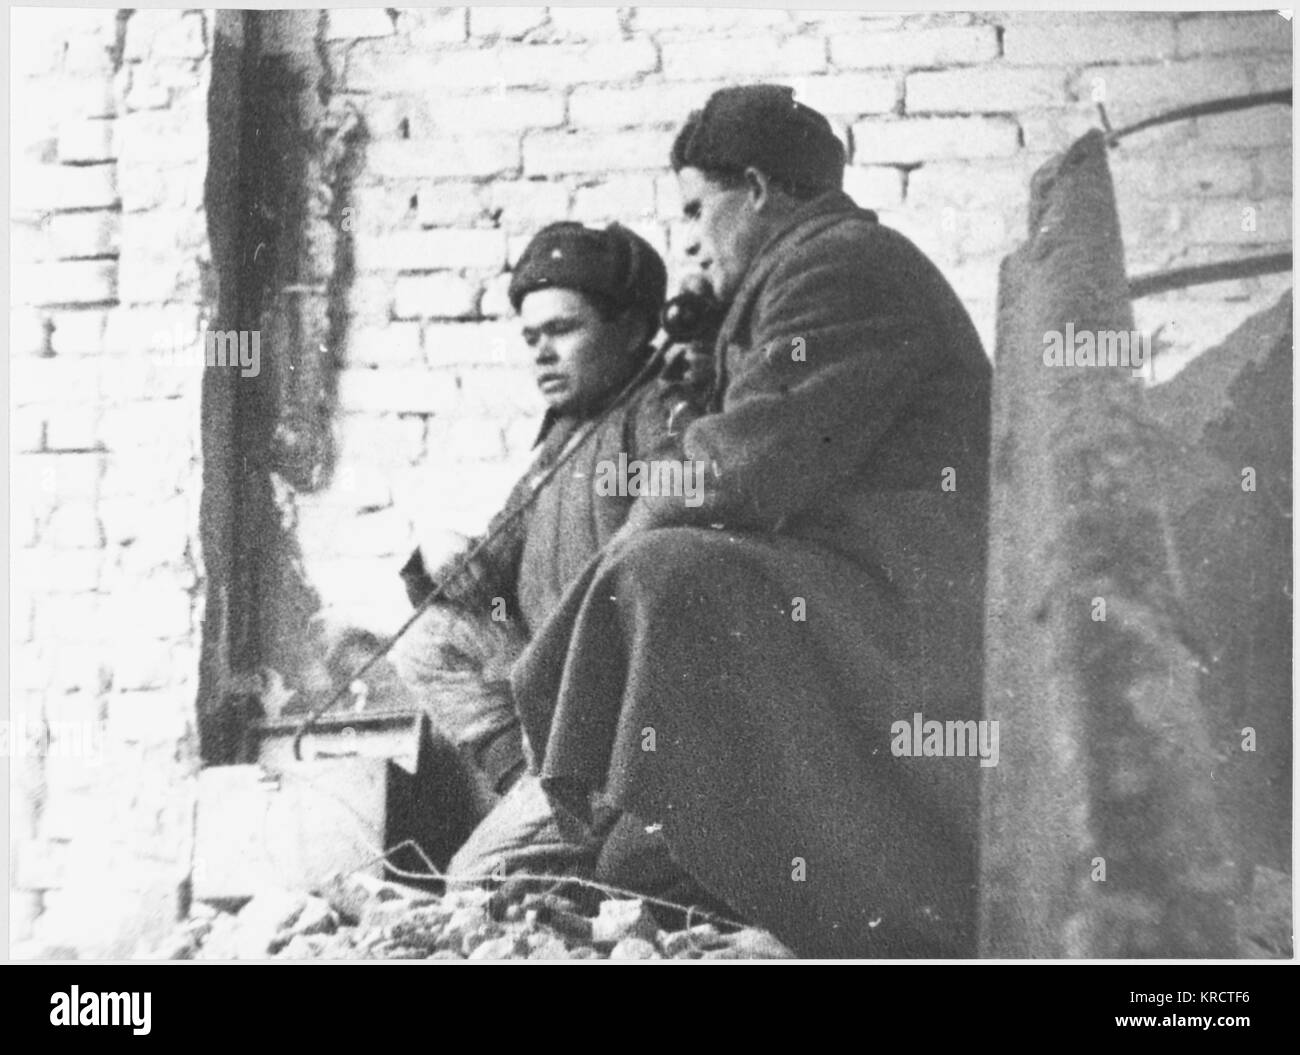 A Russian observation post in a ruined building. Date: 1942-43 - Stock Image